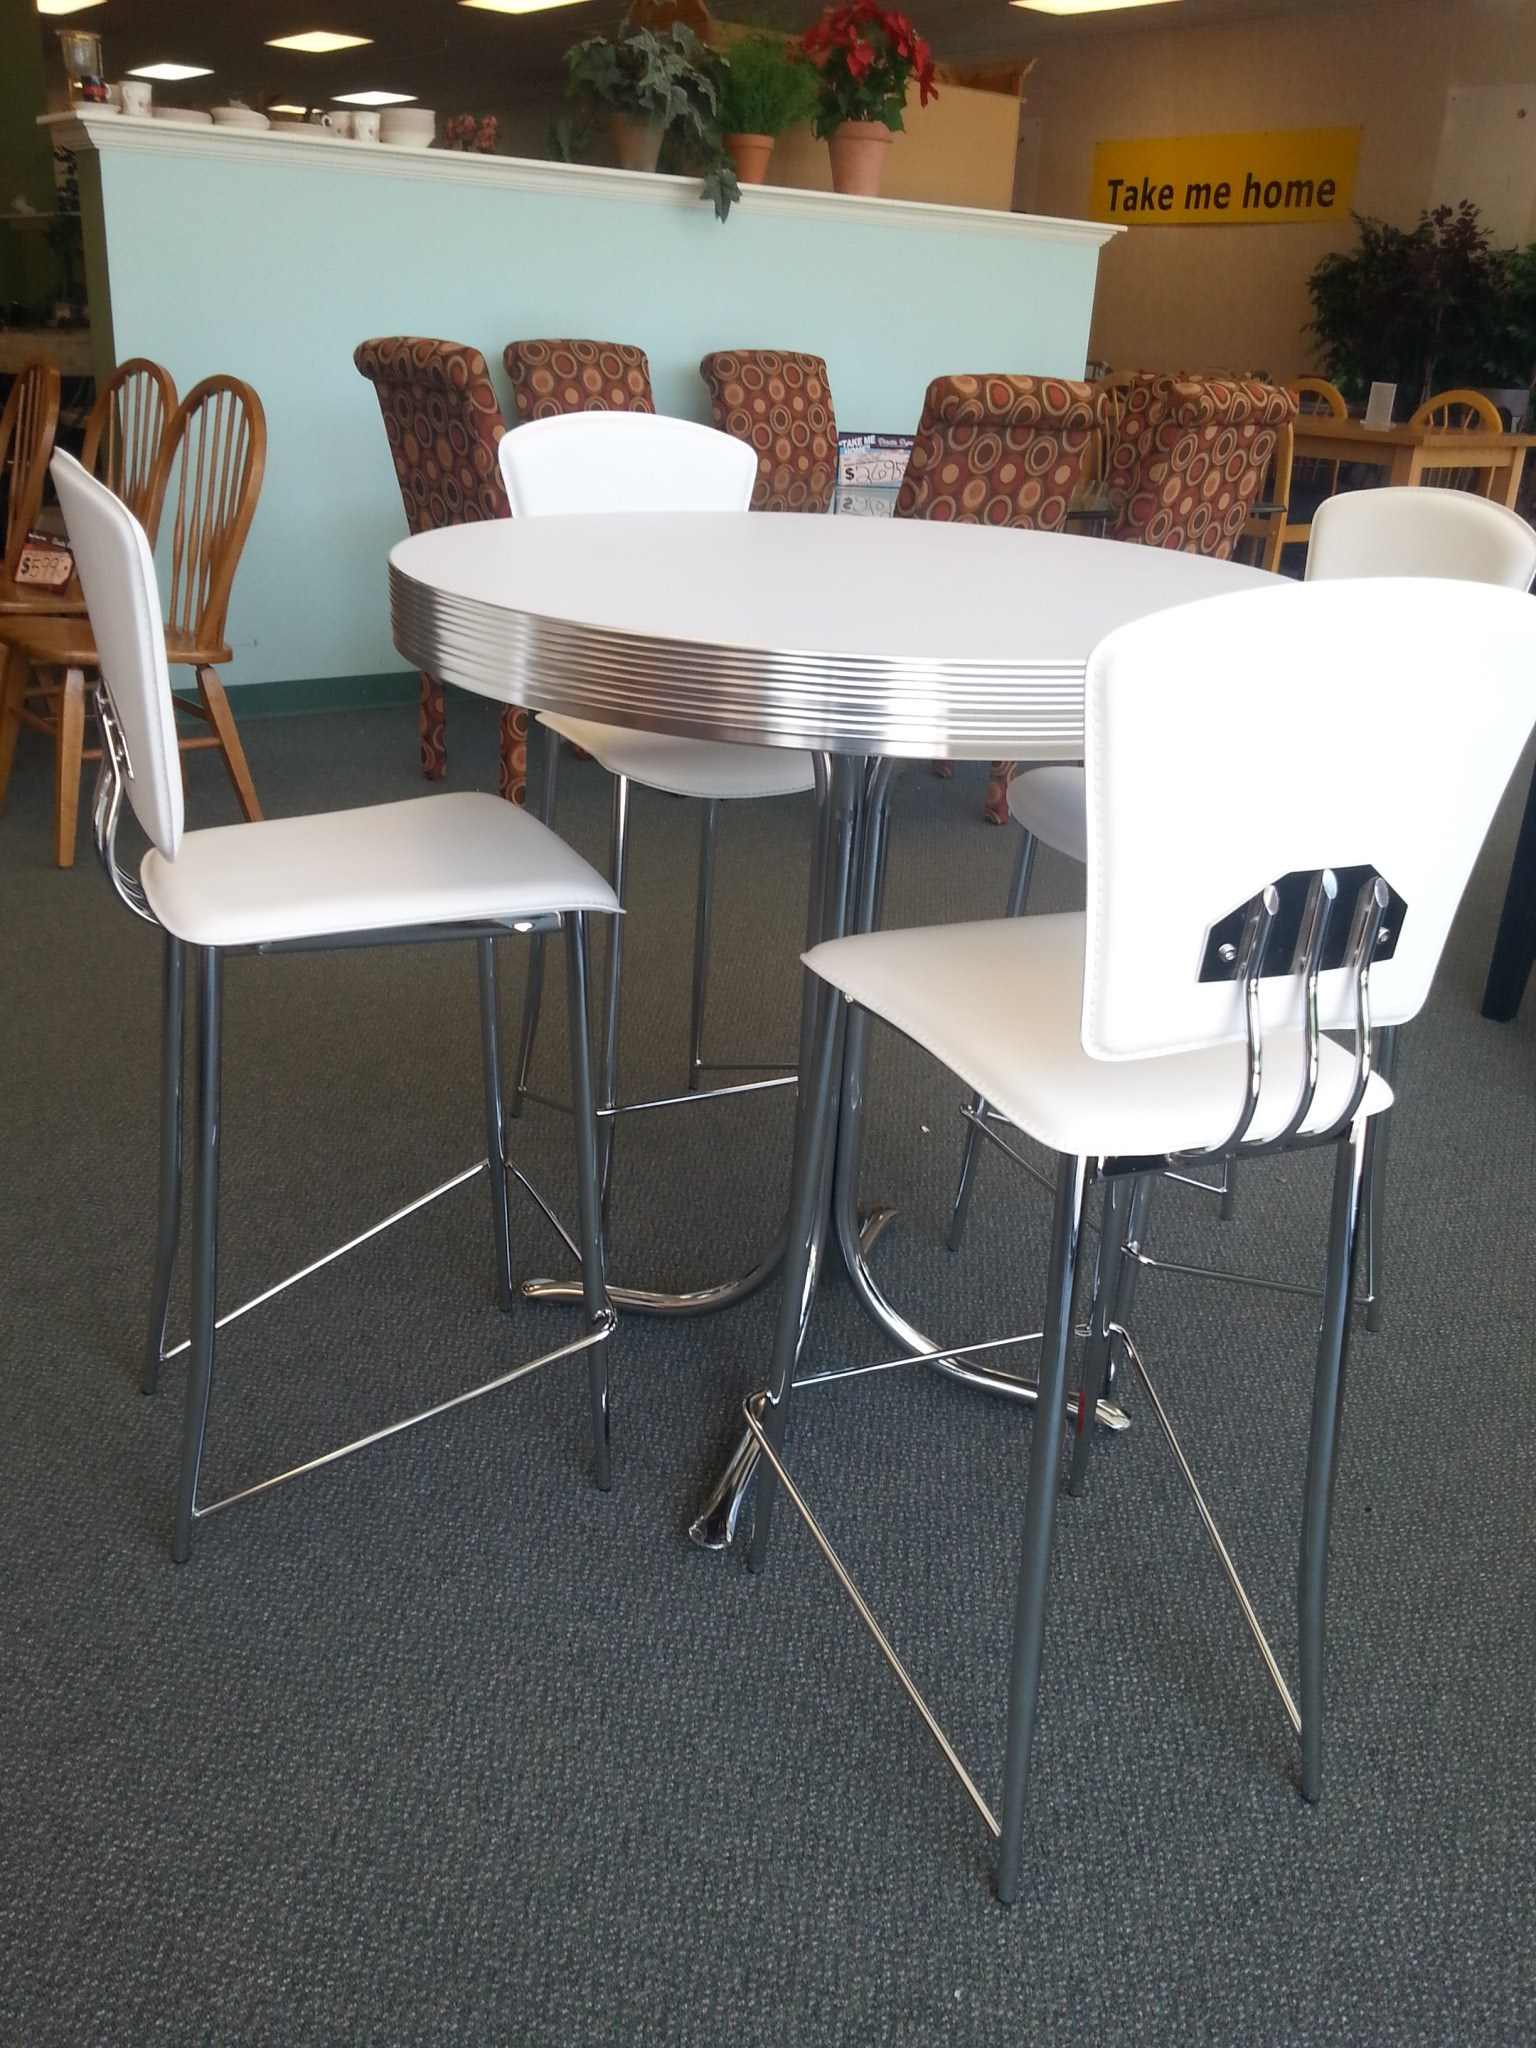 Admirable dinette depot white round furniture